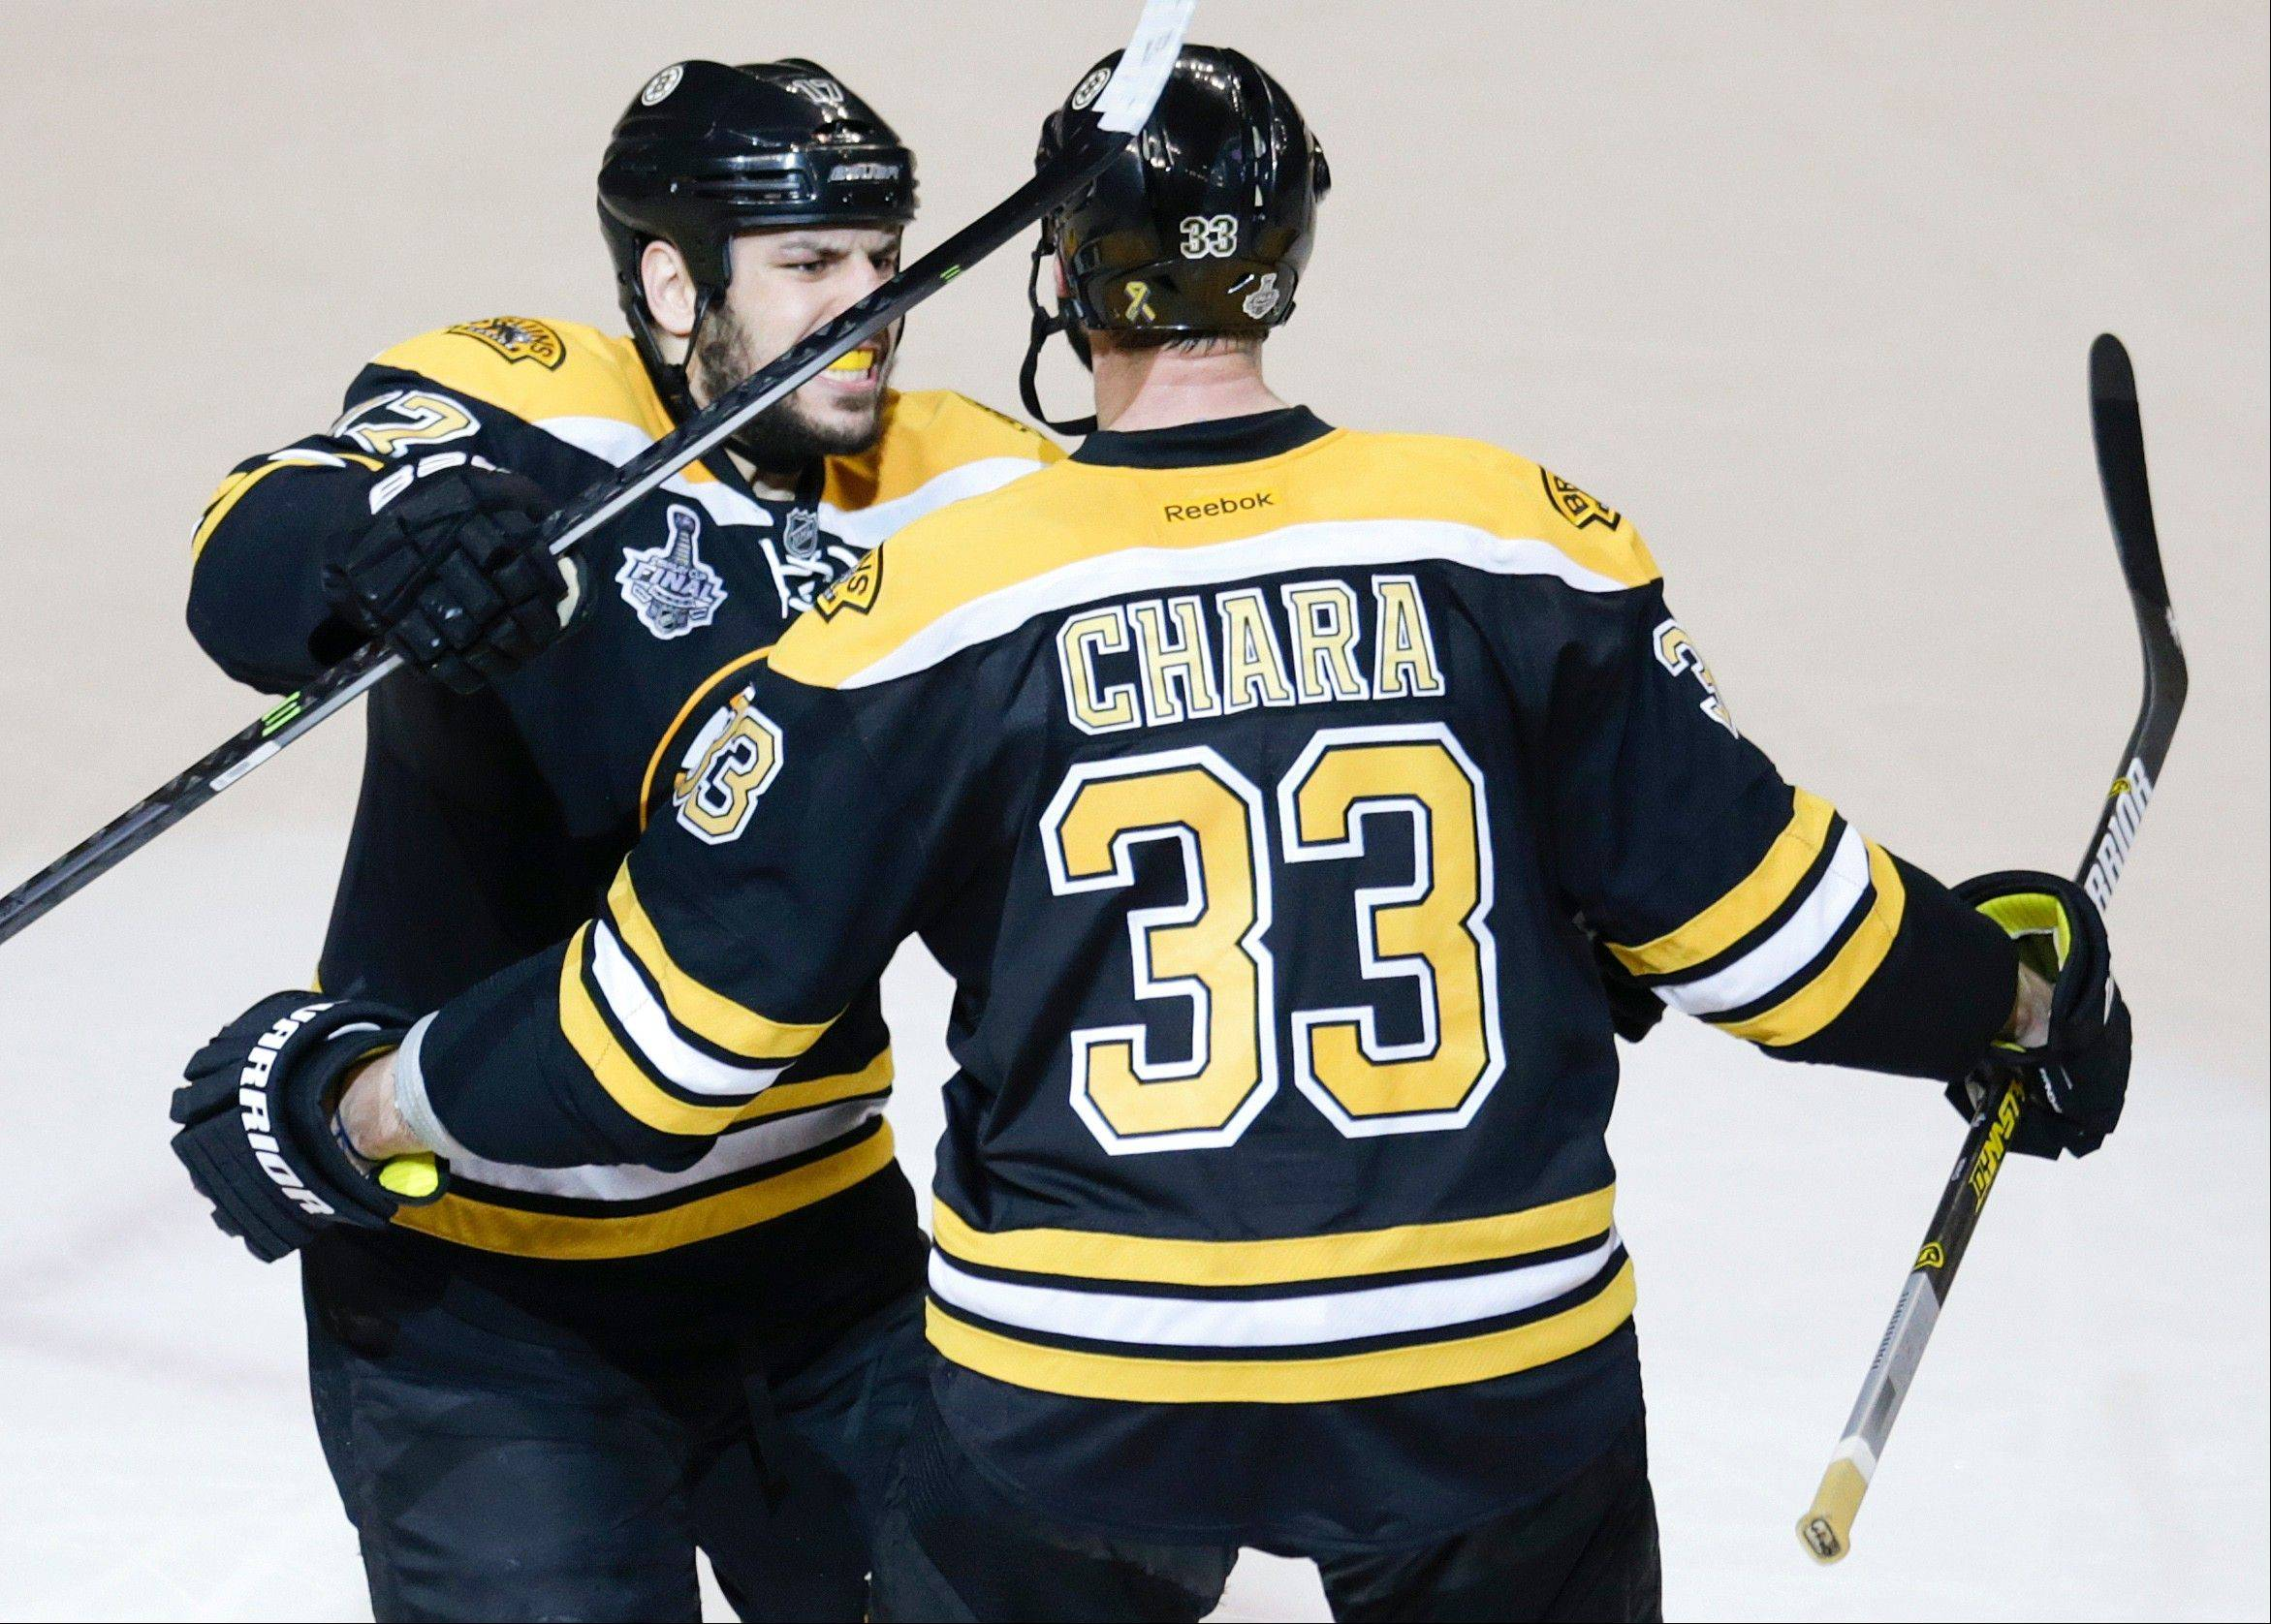 Bryan Bickell�s big hit on Boston Bruins� monster defenseman Zdeno Chara early in Game 4 was part of the Hawks� strategy to engage Chara and make him skate and it worked to perfection on Wednesday.